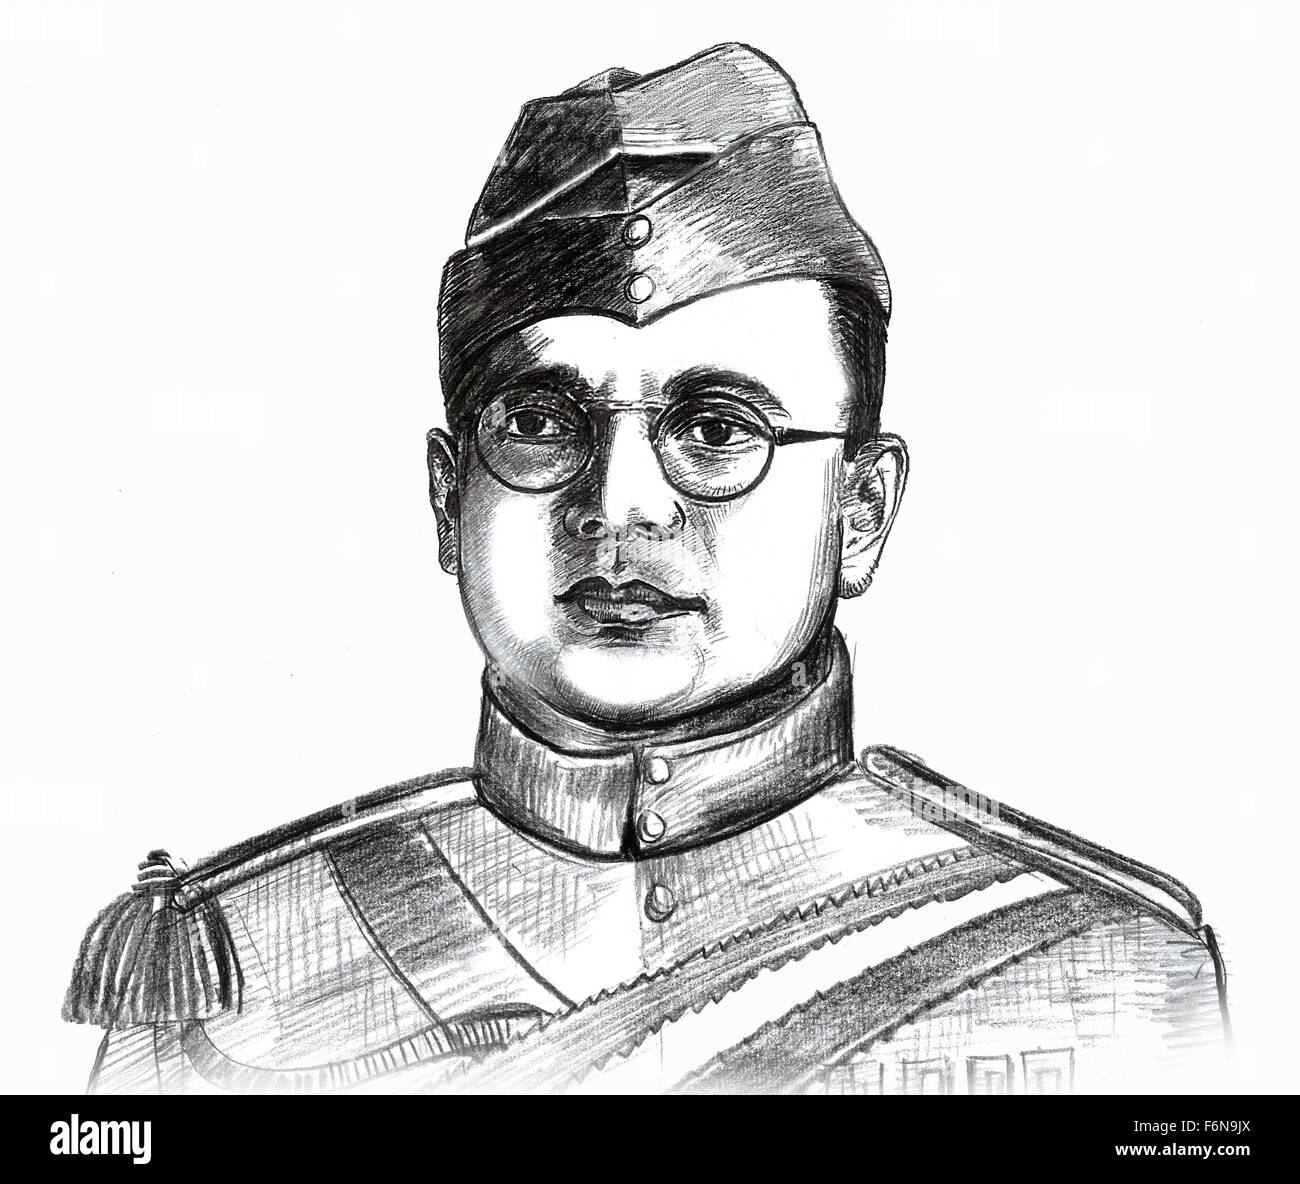 Netaji subhash chandra bose sketch stock photos netaji subhash